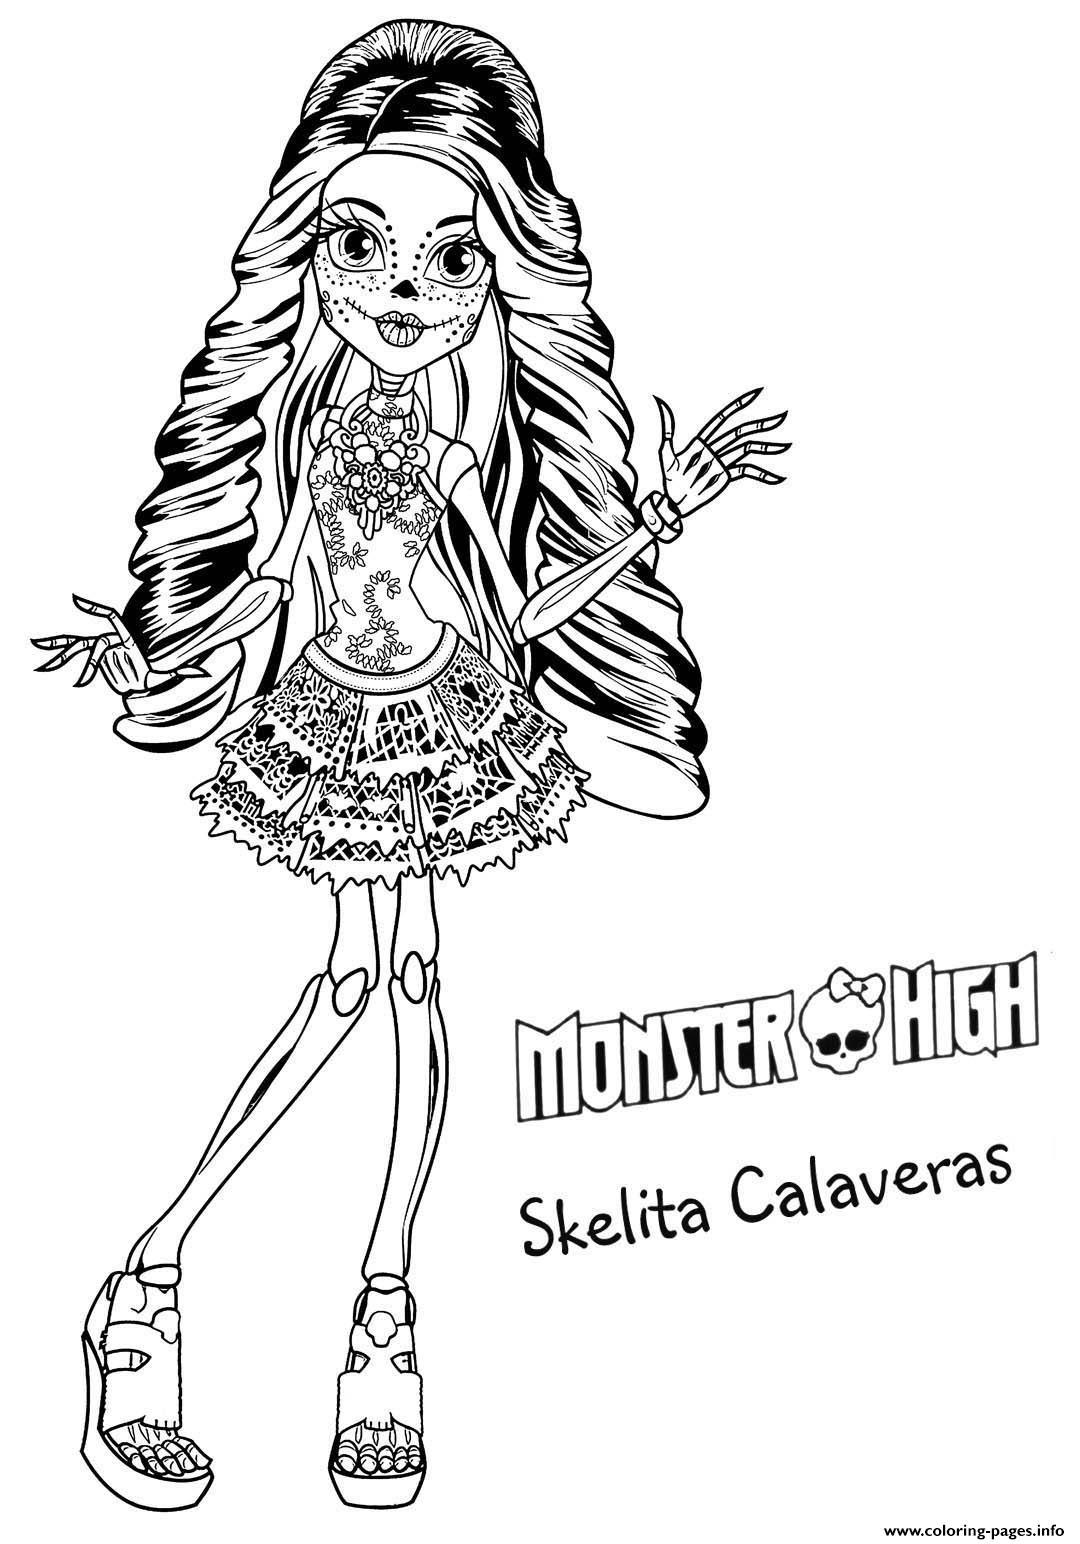 Halloween Monster High Coloring Pages Printable